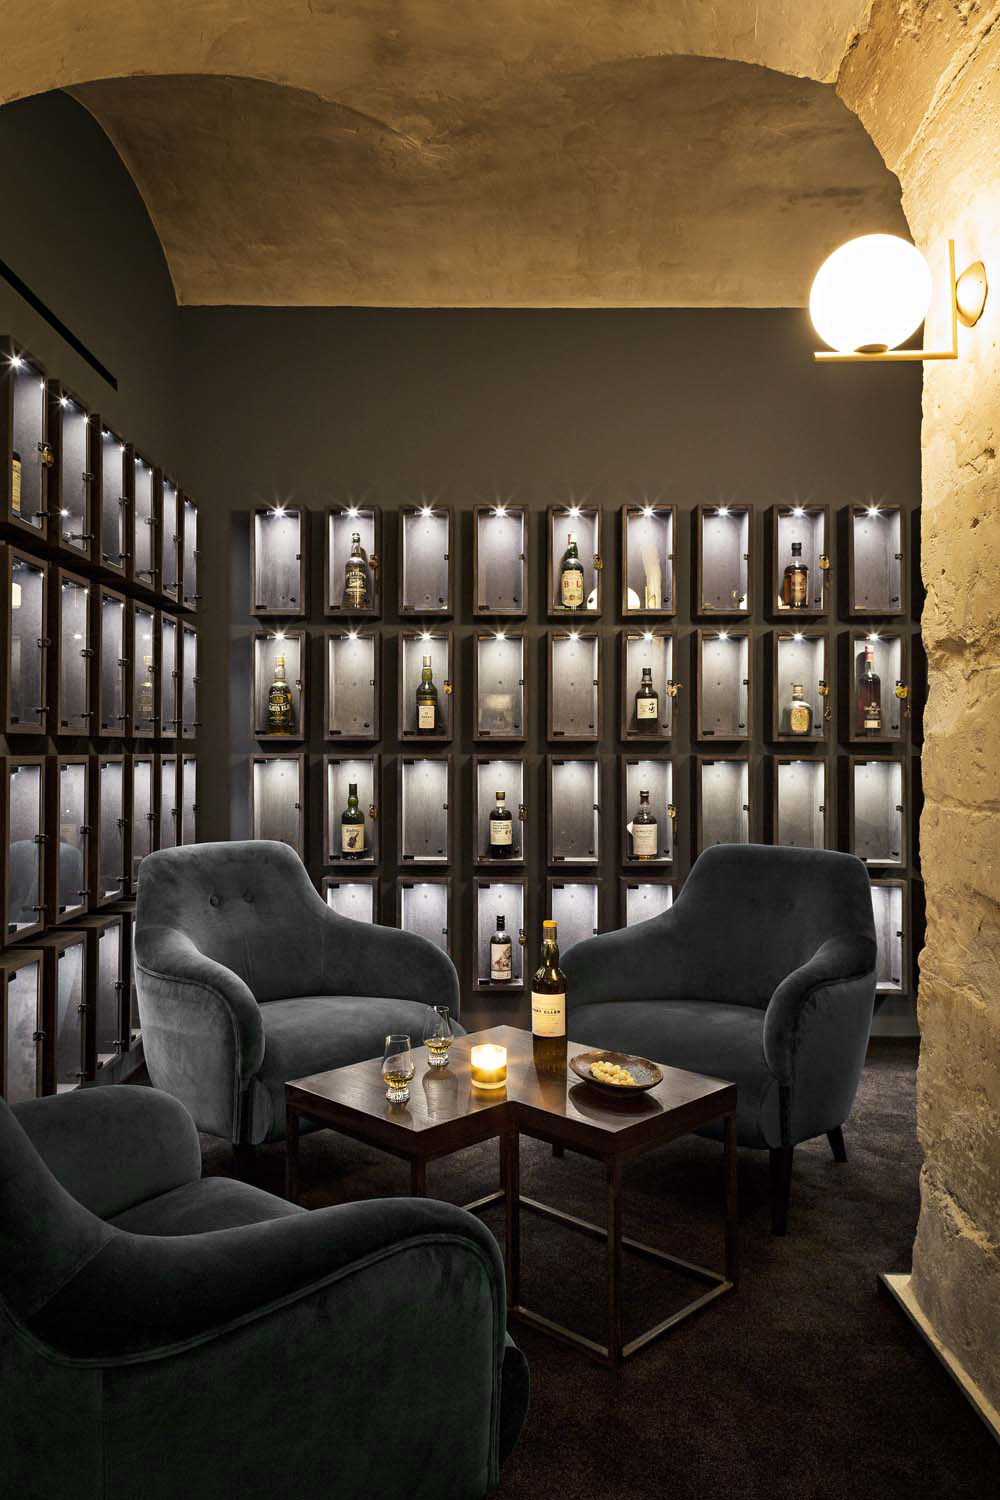 Gallery of whisky bar jbmn architectes 2 - Images of bars ...